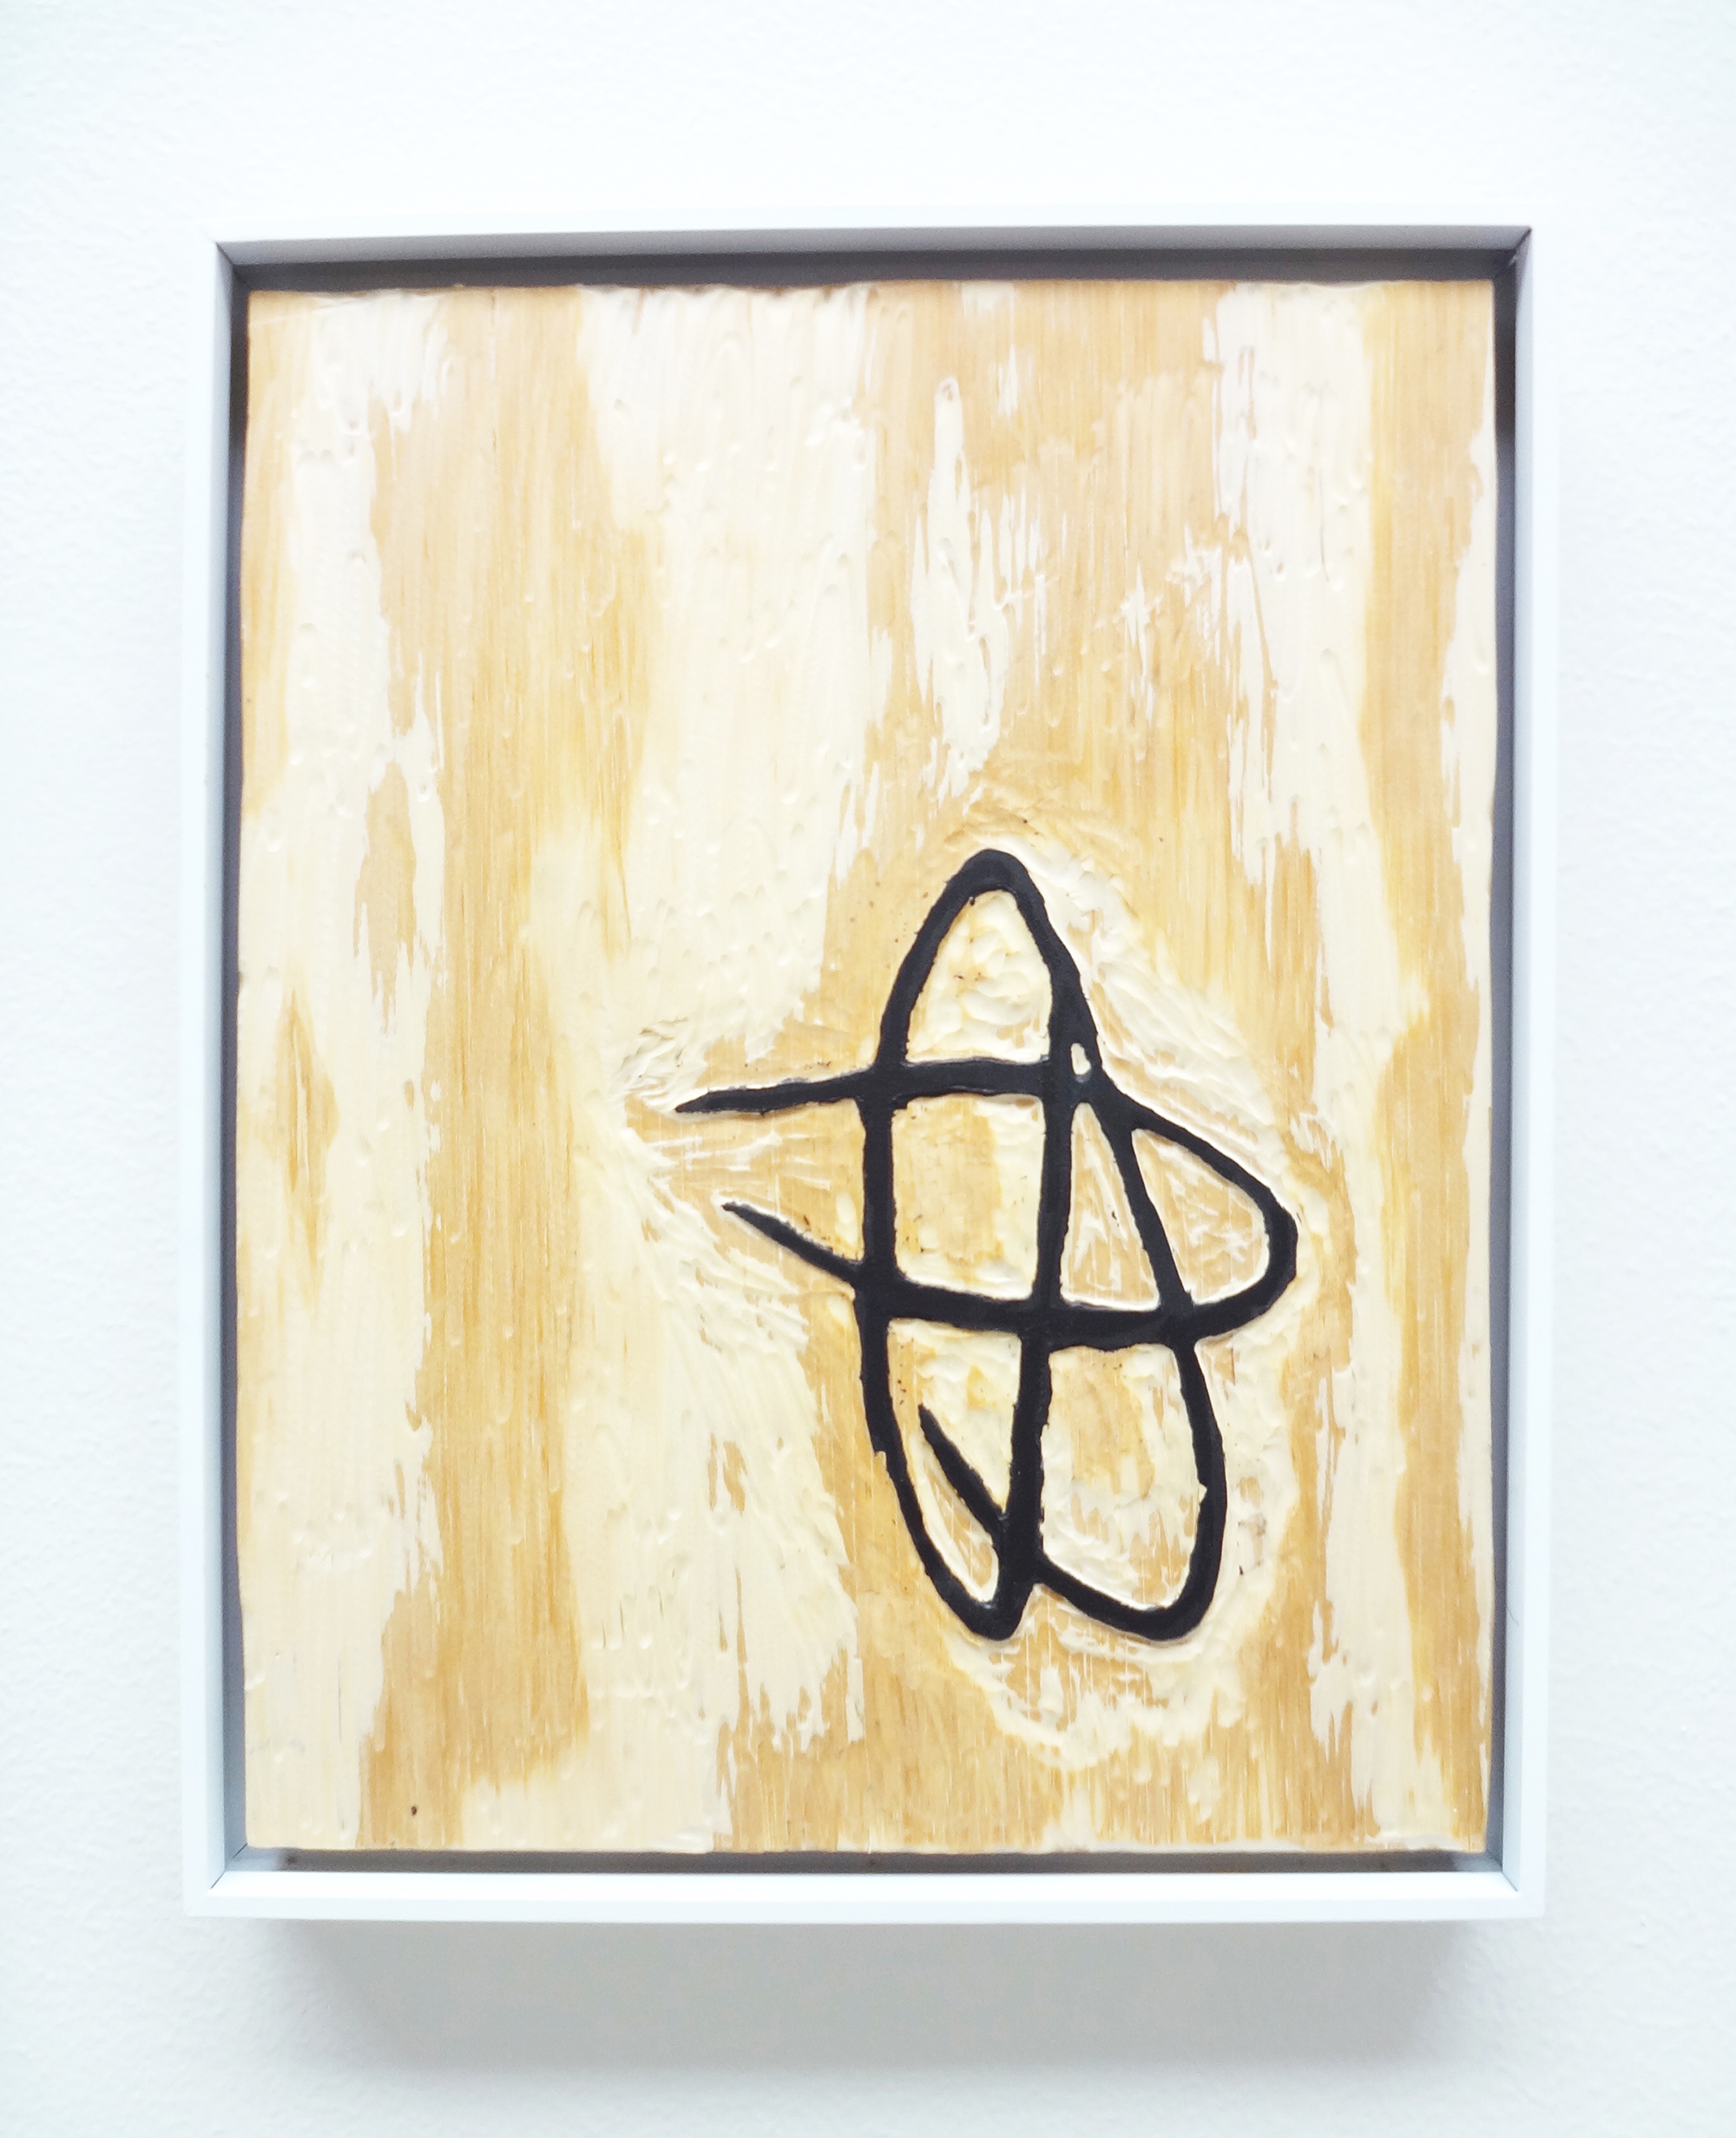 Meghan Gerety  Untitled 09 , 2015 blockprint ink on plywood 15 x 12 in.framed in aluminum